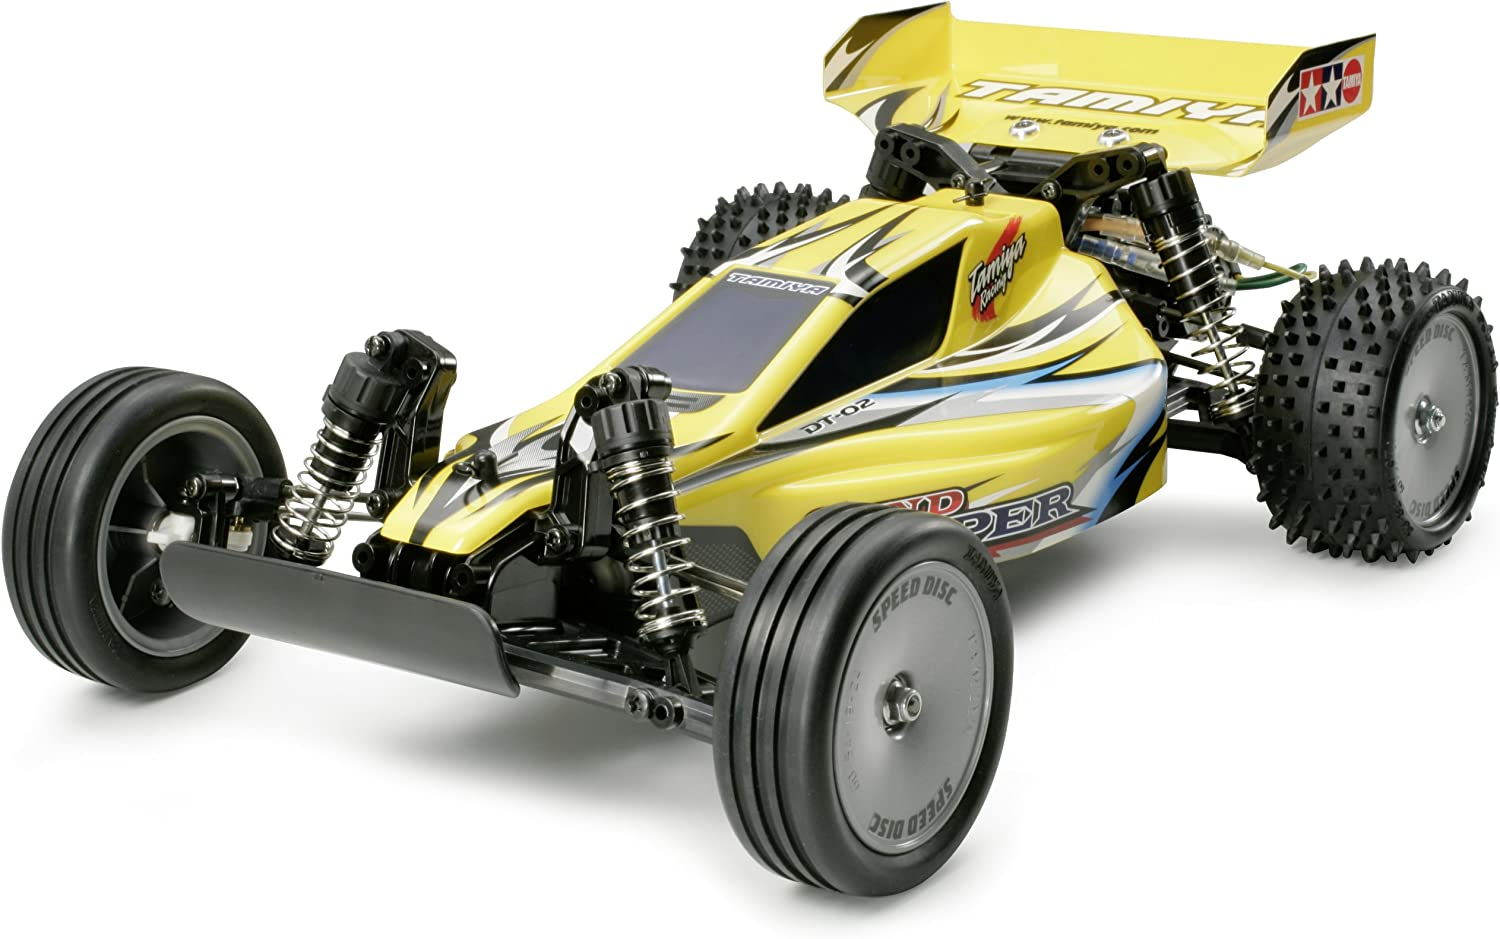 Top 5 Best RC Car Kits: Cool Options For You to Check Out 3